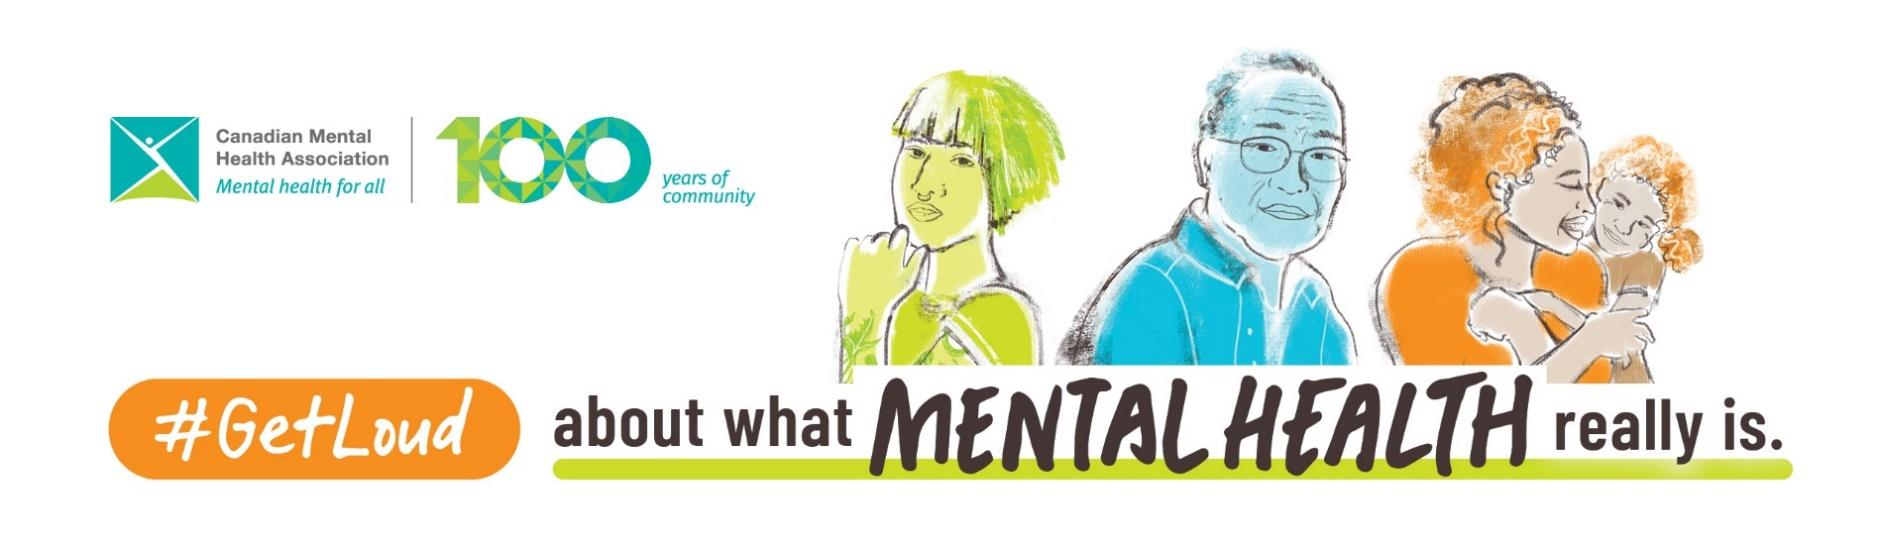 CMHA Mental Health Week Key Messages